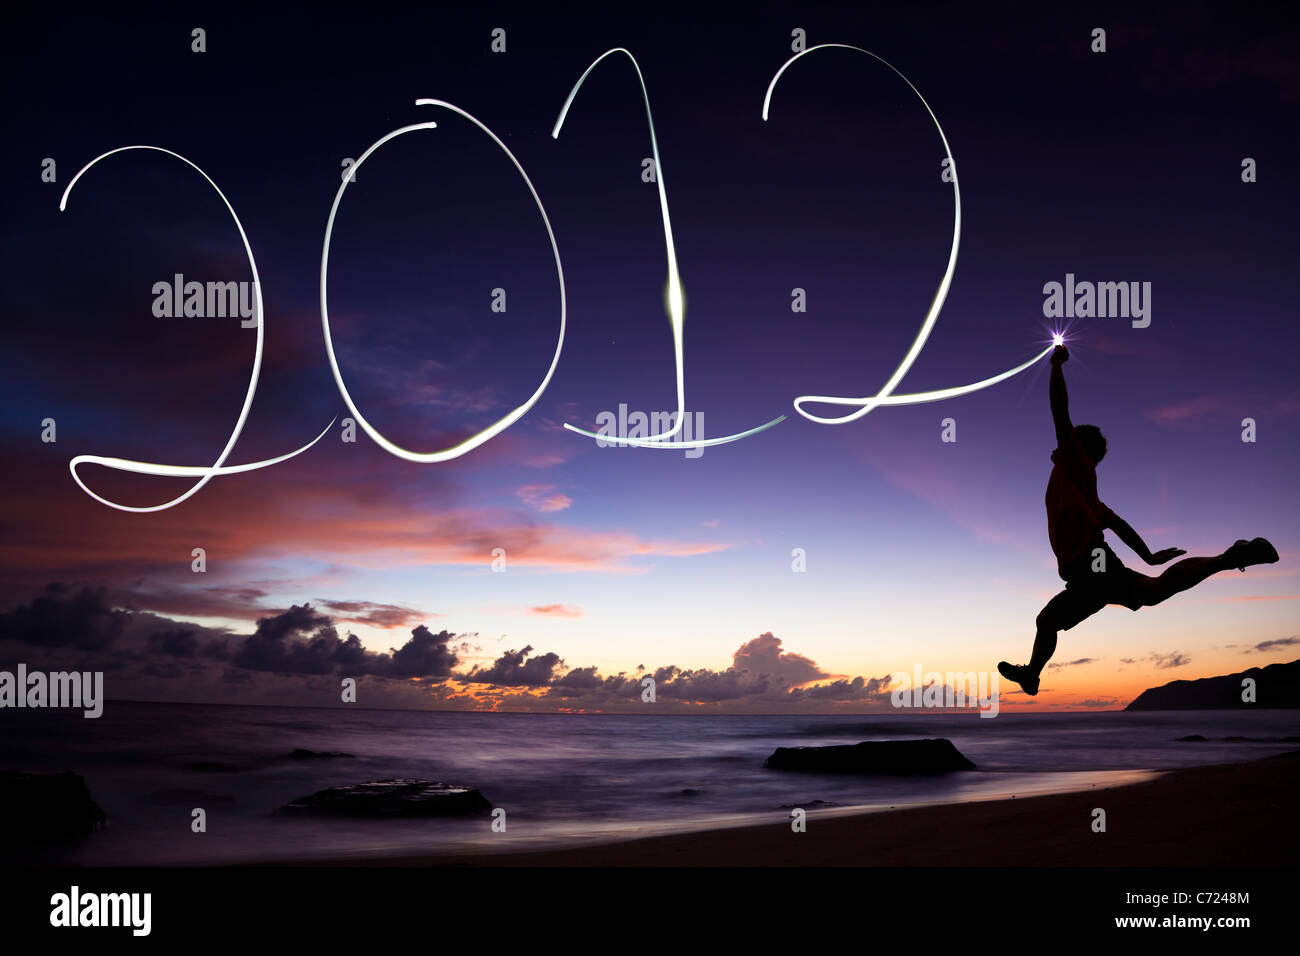 happy new year 2012. young man jumping and drawing 2012 by flashlight in the air on the beach before sunrise - Stock Image